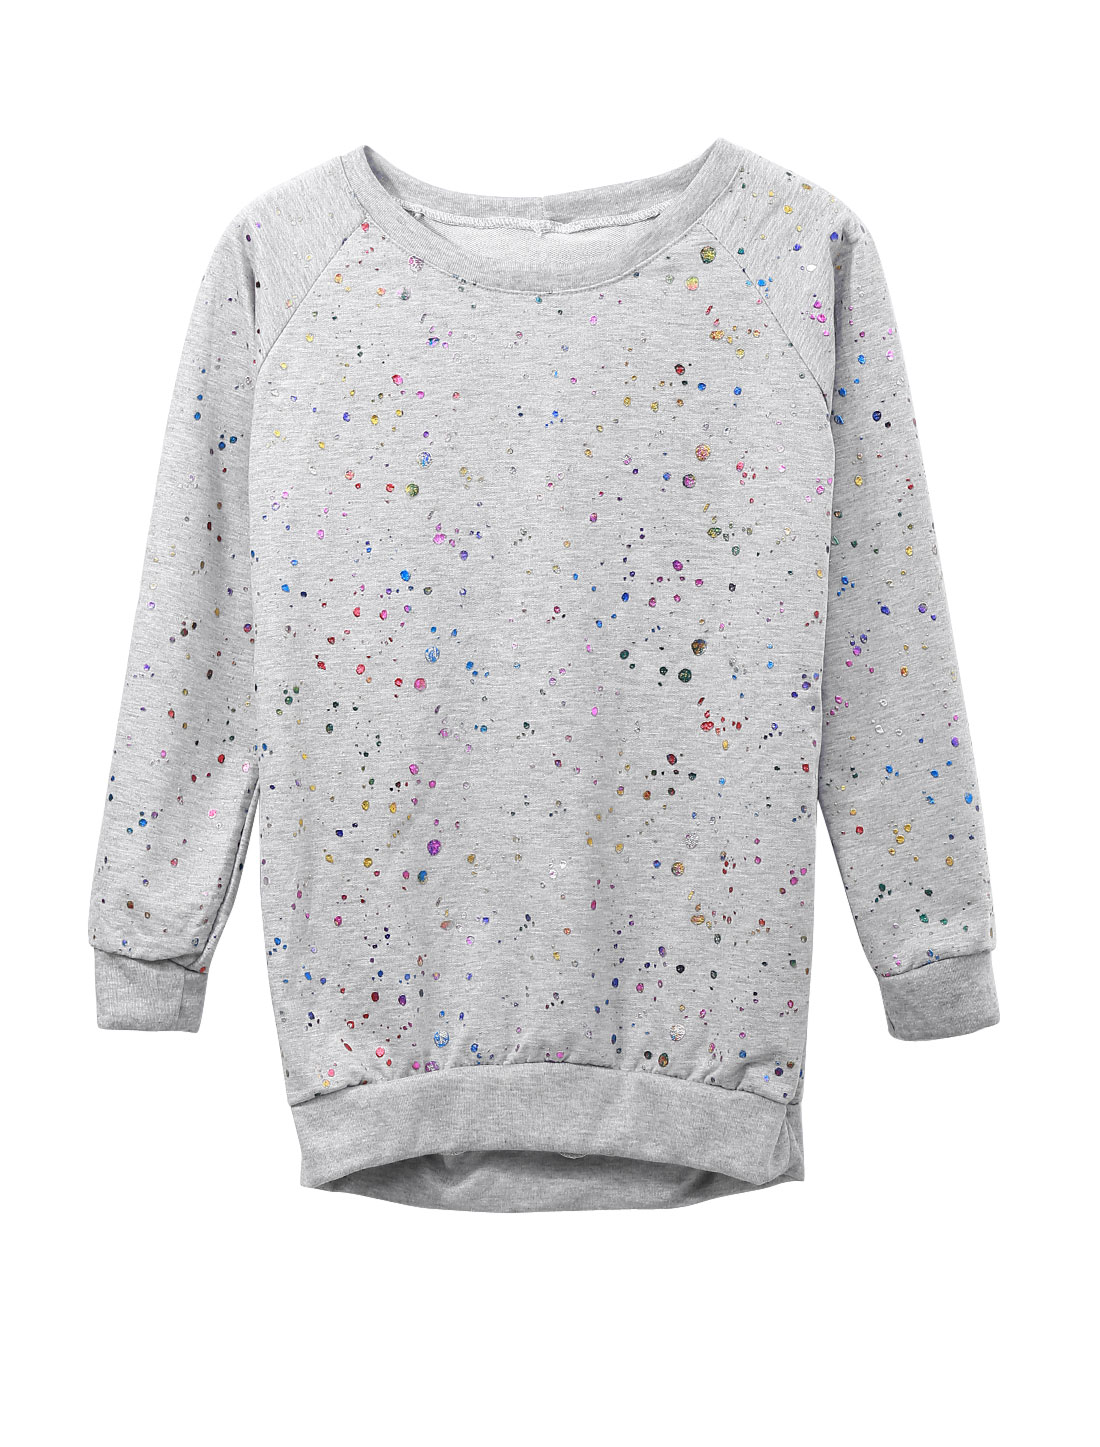 Lady Slipover Dots Prints Ribbed Hem Leisure Sweatshirt Light Gray XS